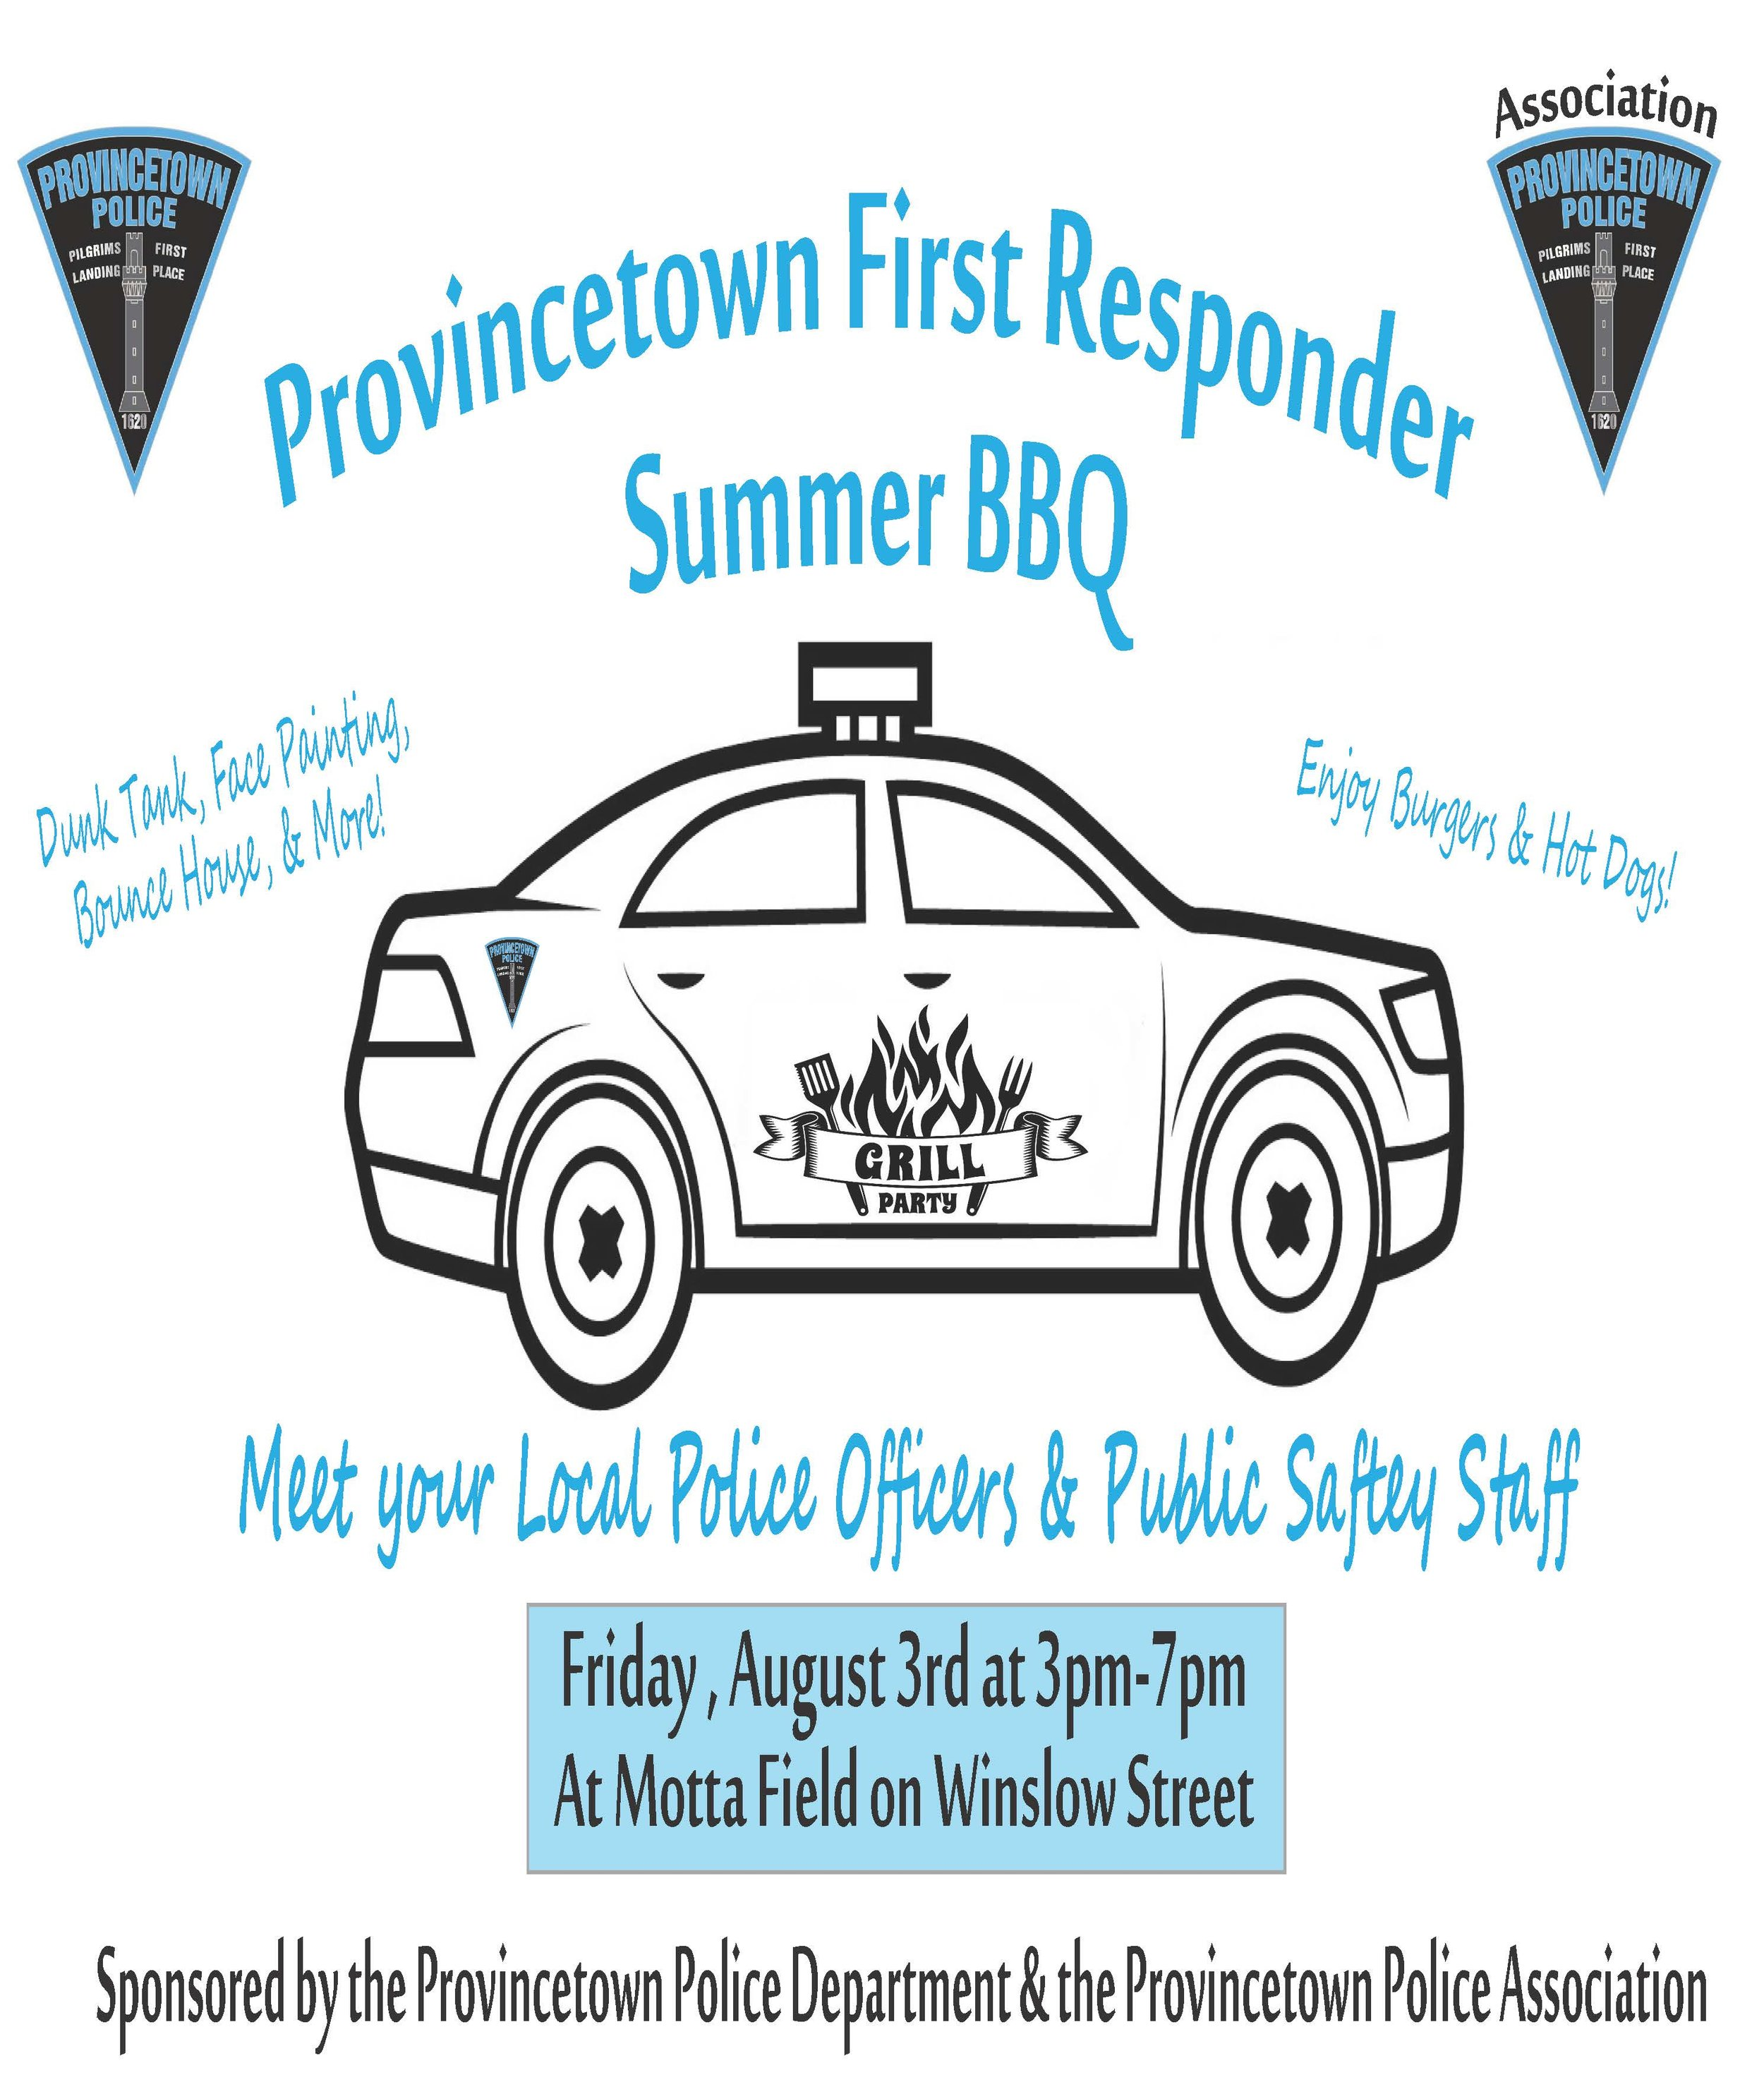 [Image Text] Provincetown First Responder Summer BBQ. Meet your local police officers and public safety staff. Friday, August 3rd from 3 - 7 pm at Motta Field on Winslow Street. Sponsored by the Provincetown Police Department & the Provincetown Police Association.